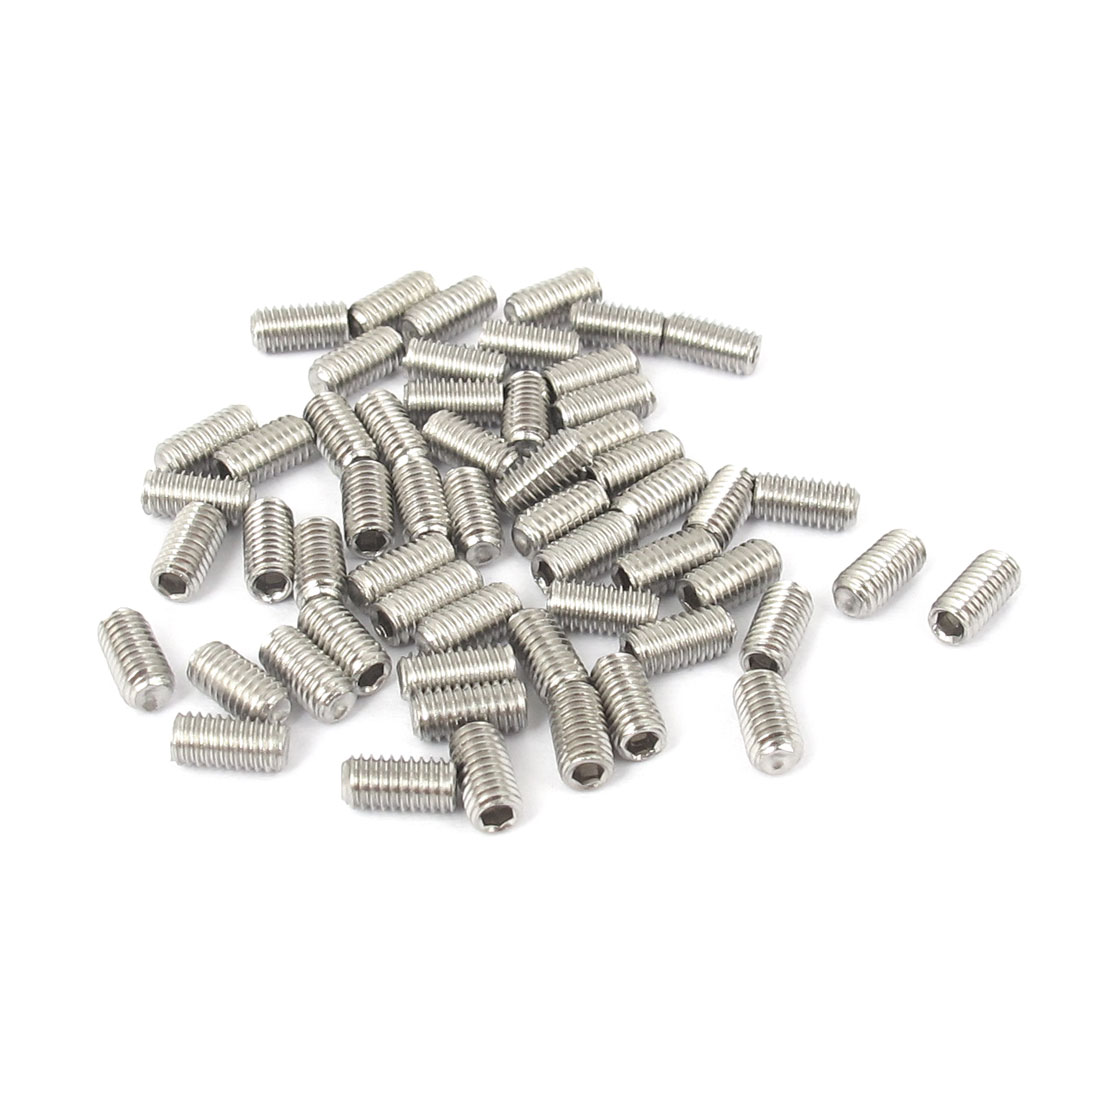 M3x6mm Stainless Steel Hex Socket Set Cap Point Grub Screws Silver Tone 50pcs